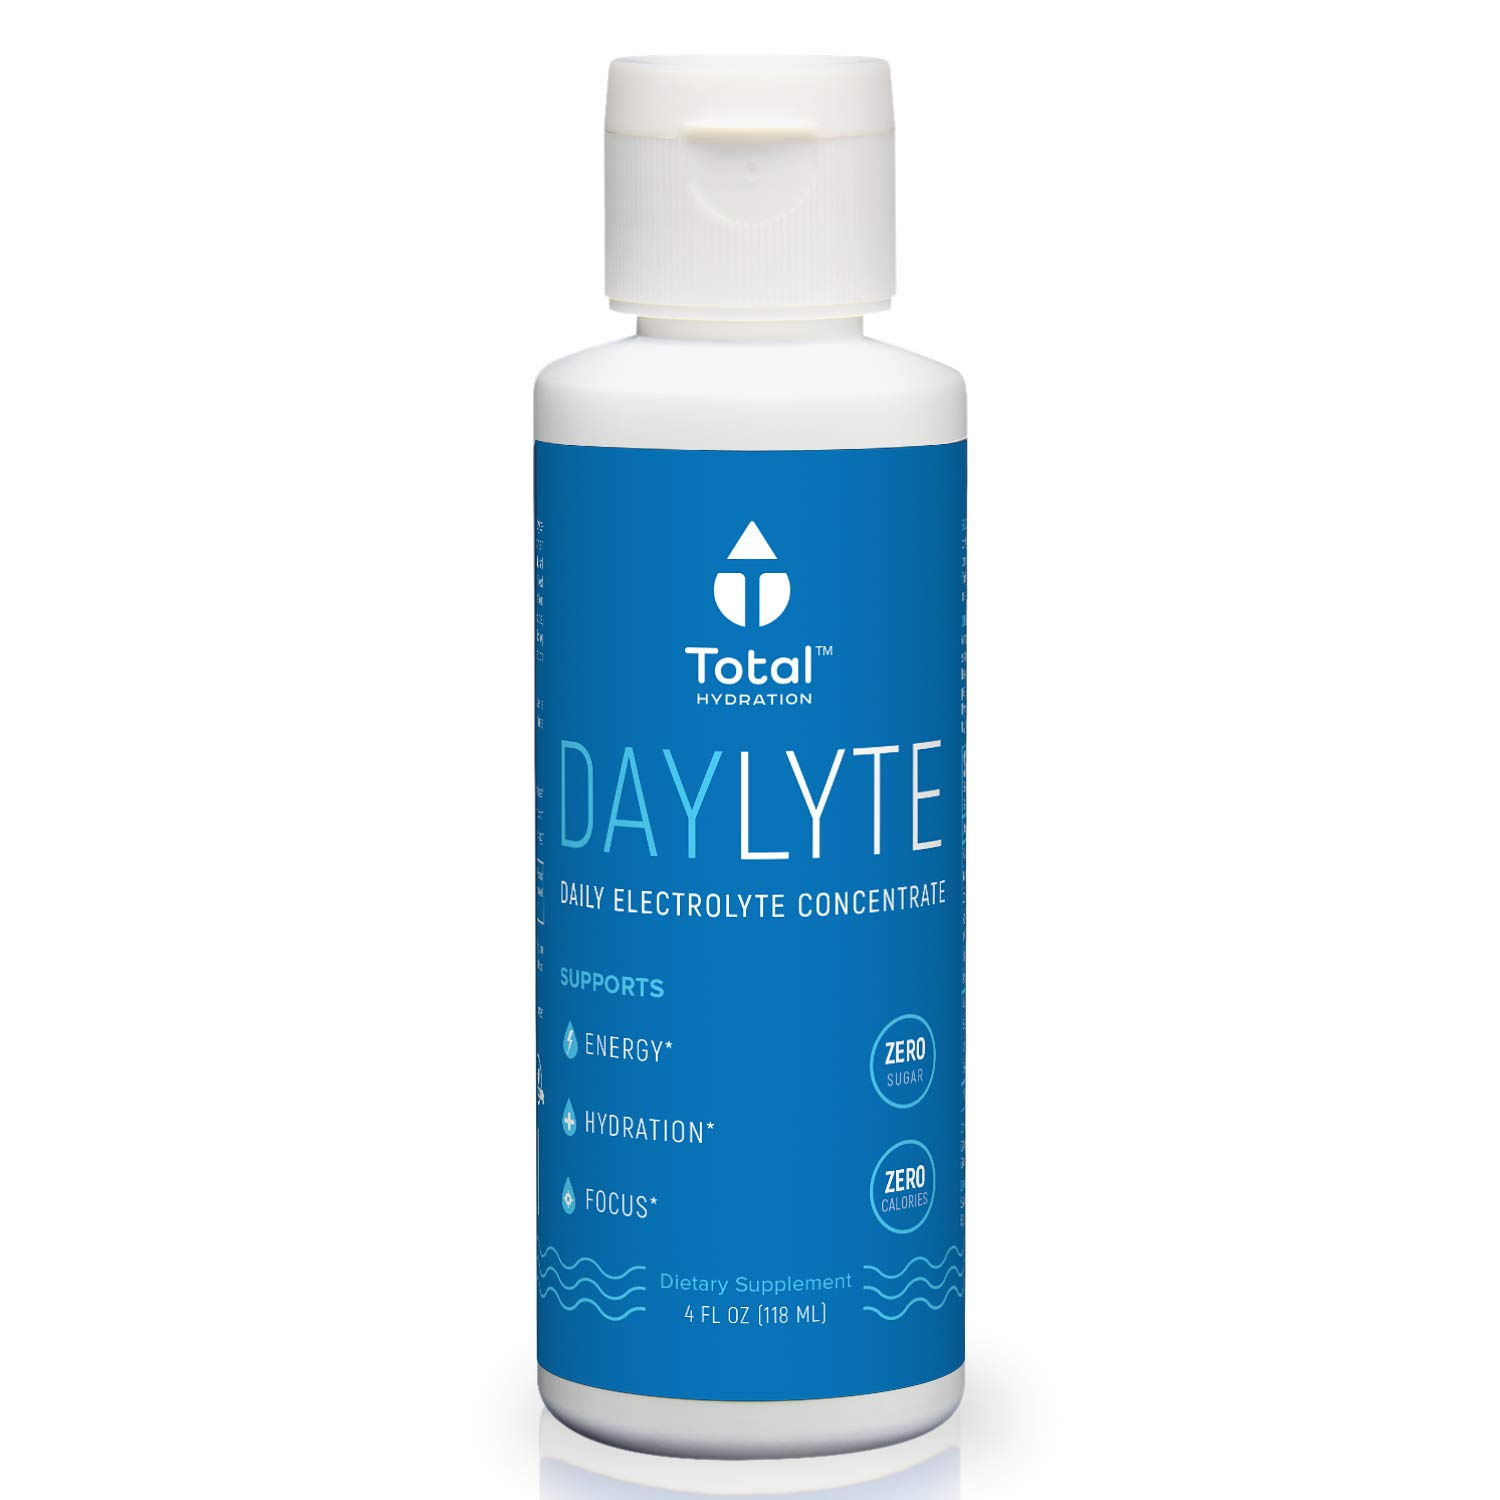 Natural Electrolyte Concentrate Solution - Hydration Supplement - #1 Ranked - Rehydration for Endurance Sports, Exercise & Alcohol - w/Salt, Magnesium, Potassium & Trace Minerals - Vegan, Non-GMO,